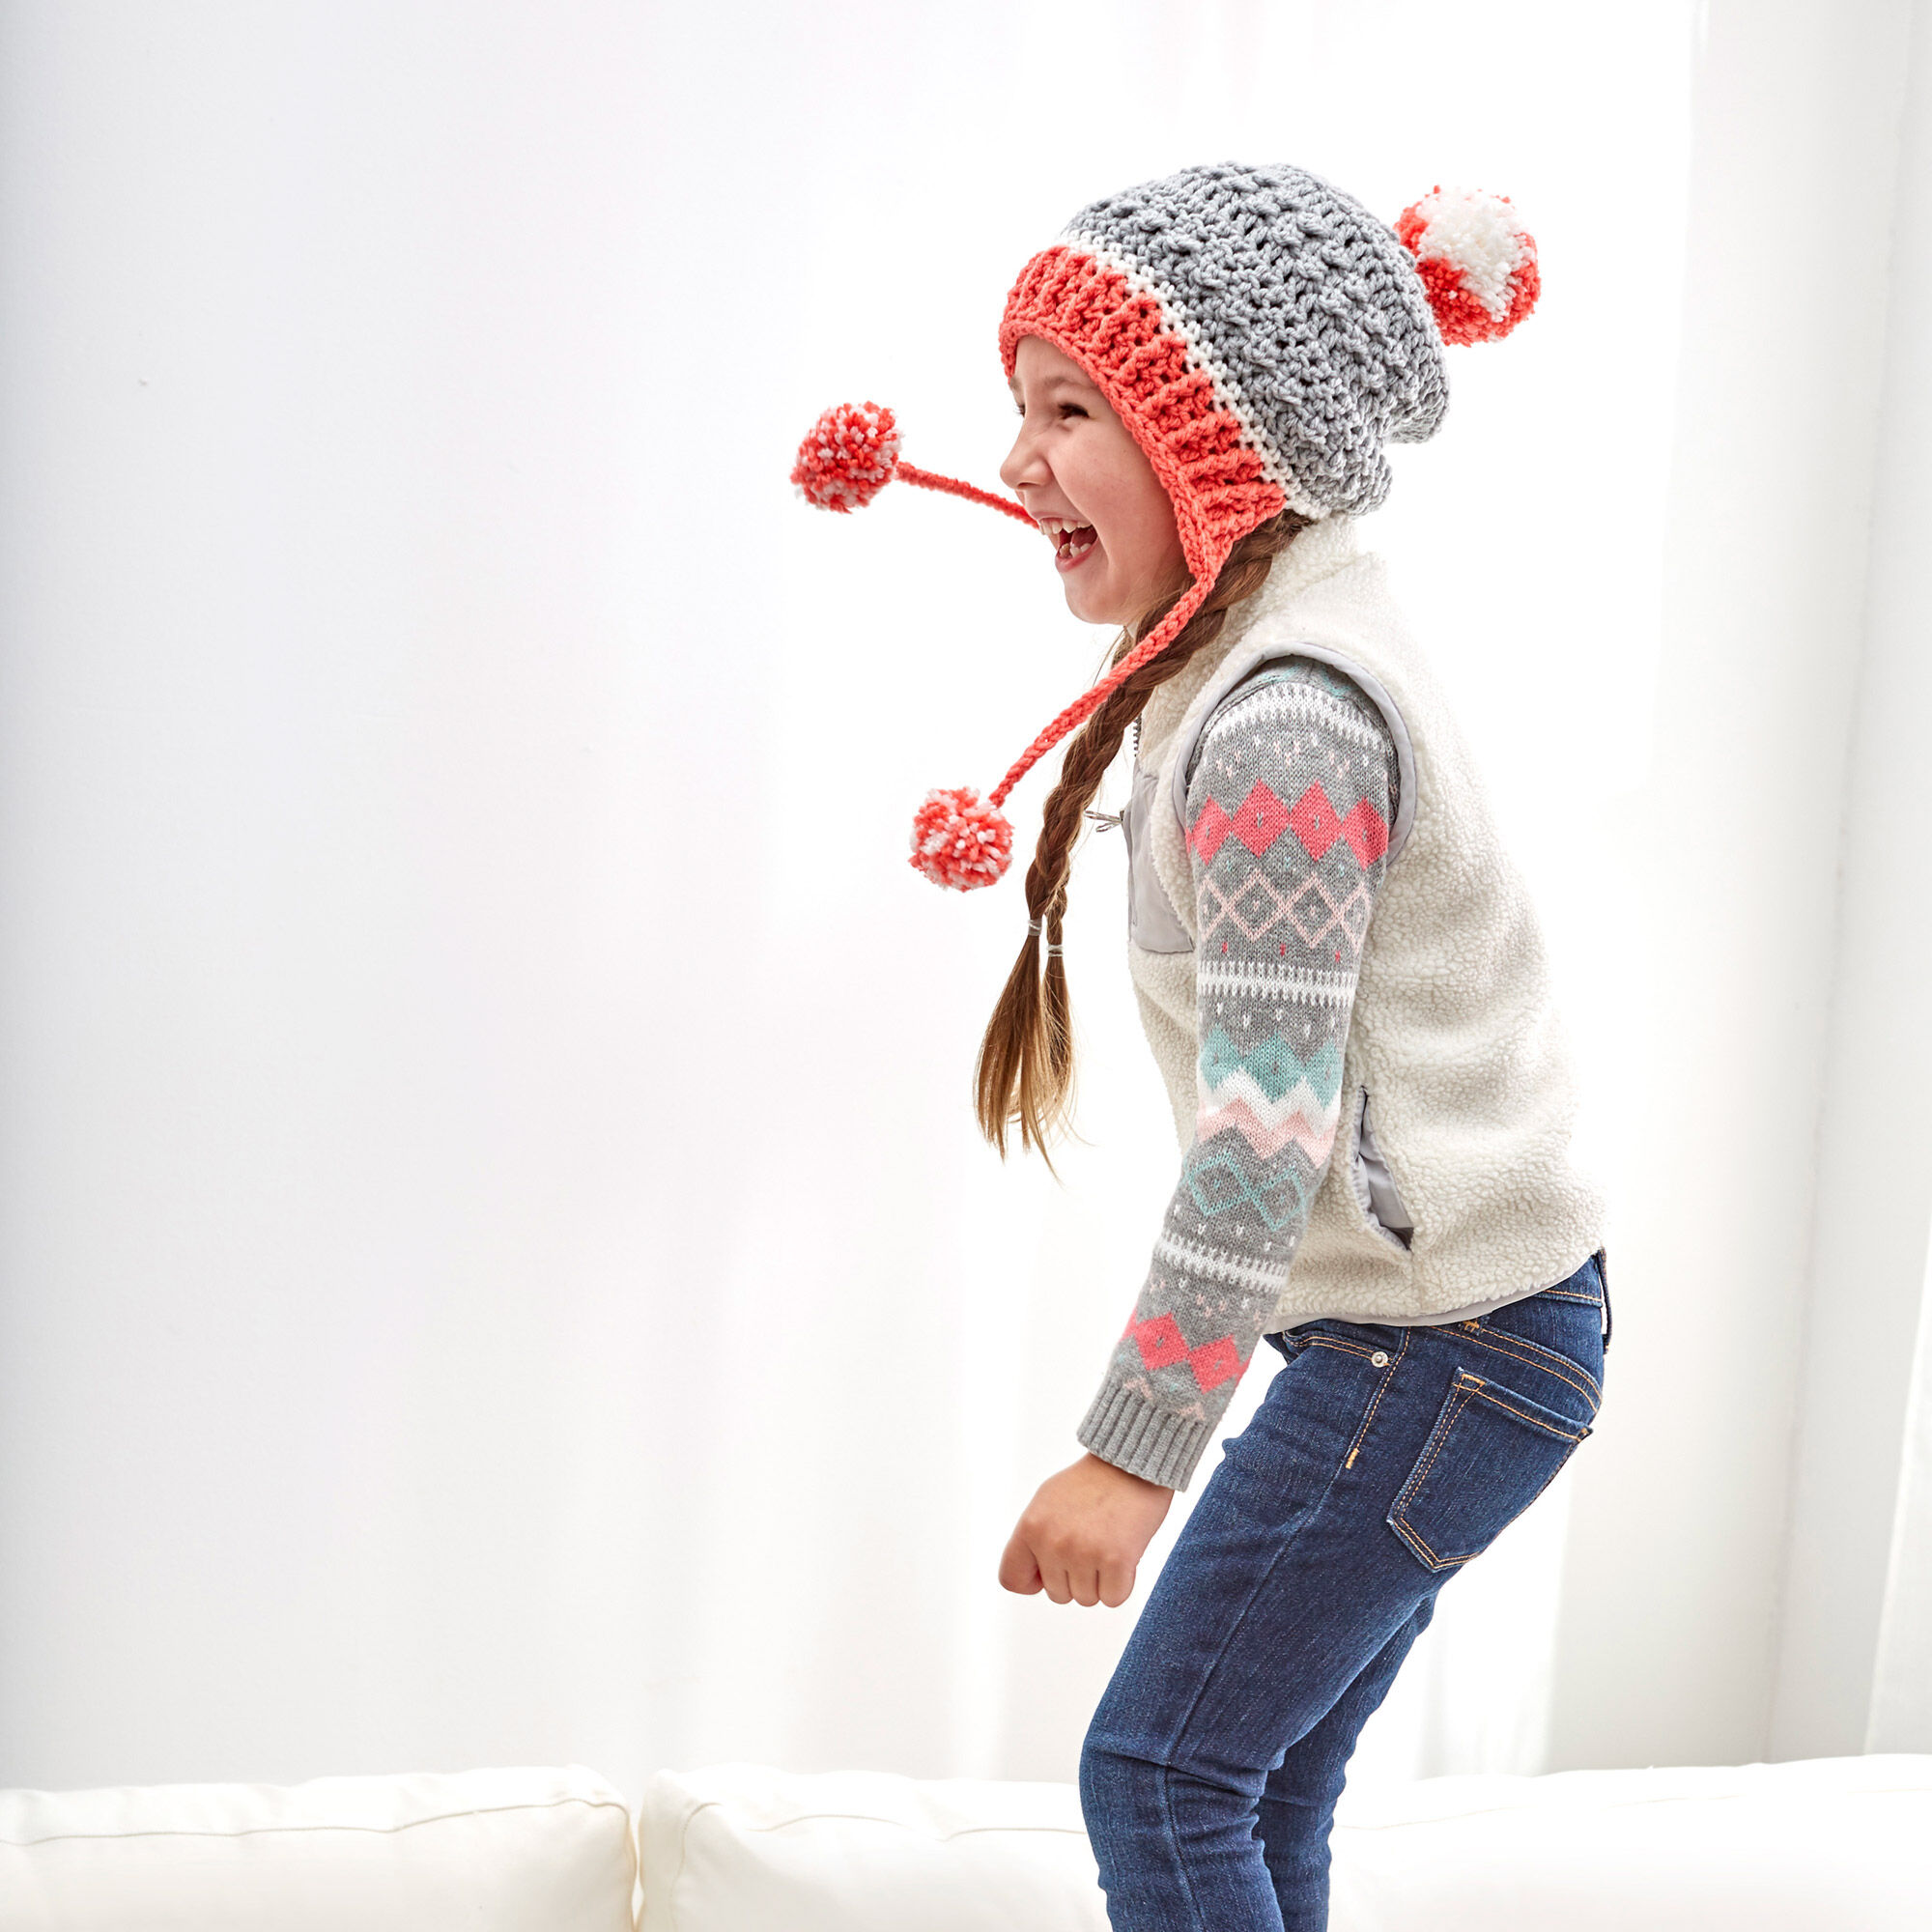 Little Miss PomPom Hat - This list of Christmas Crochet hat patterns will supply you with anything from the classics (Santa, Rudolph, Snowman) to fun animals and well-loved characters. #ChristmasCrochetHatPatterns #CrochetHatPatterns #CrochetPatterns